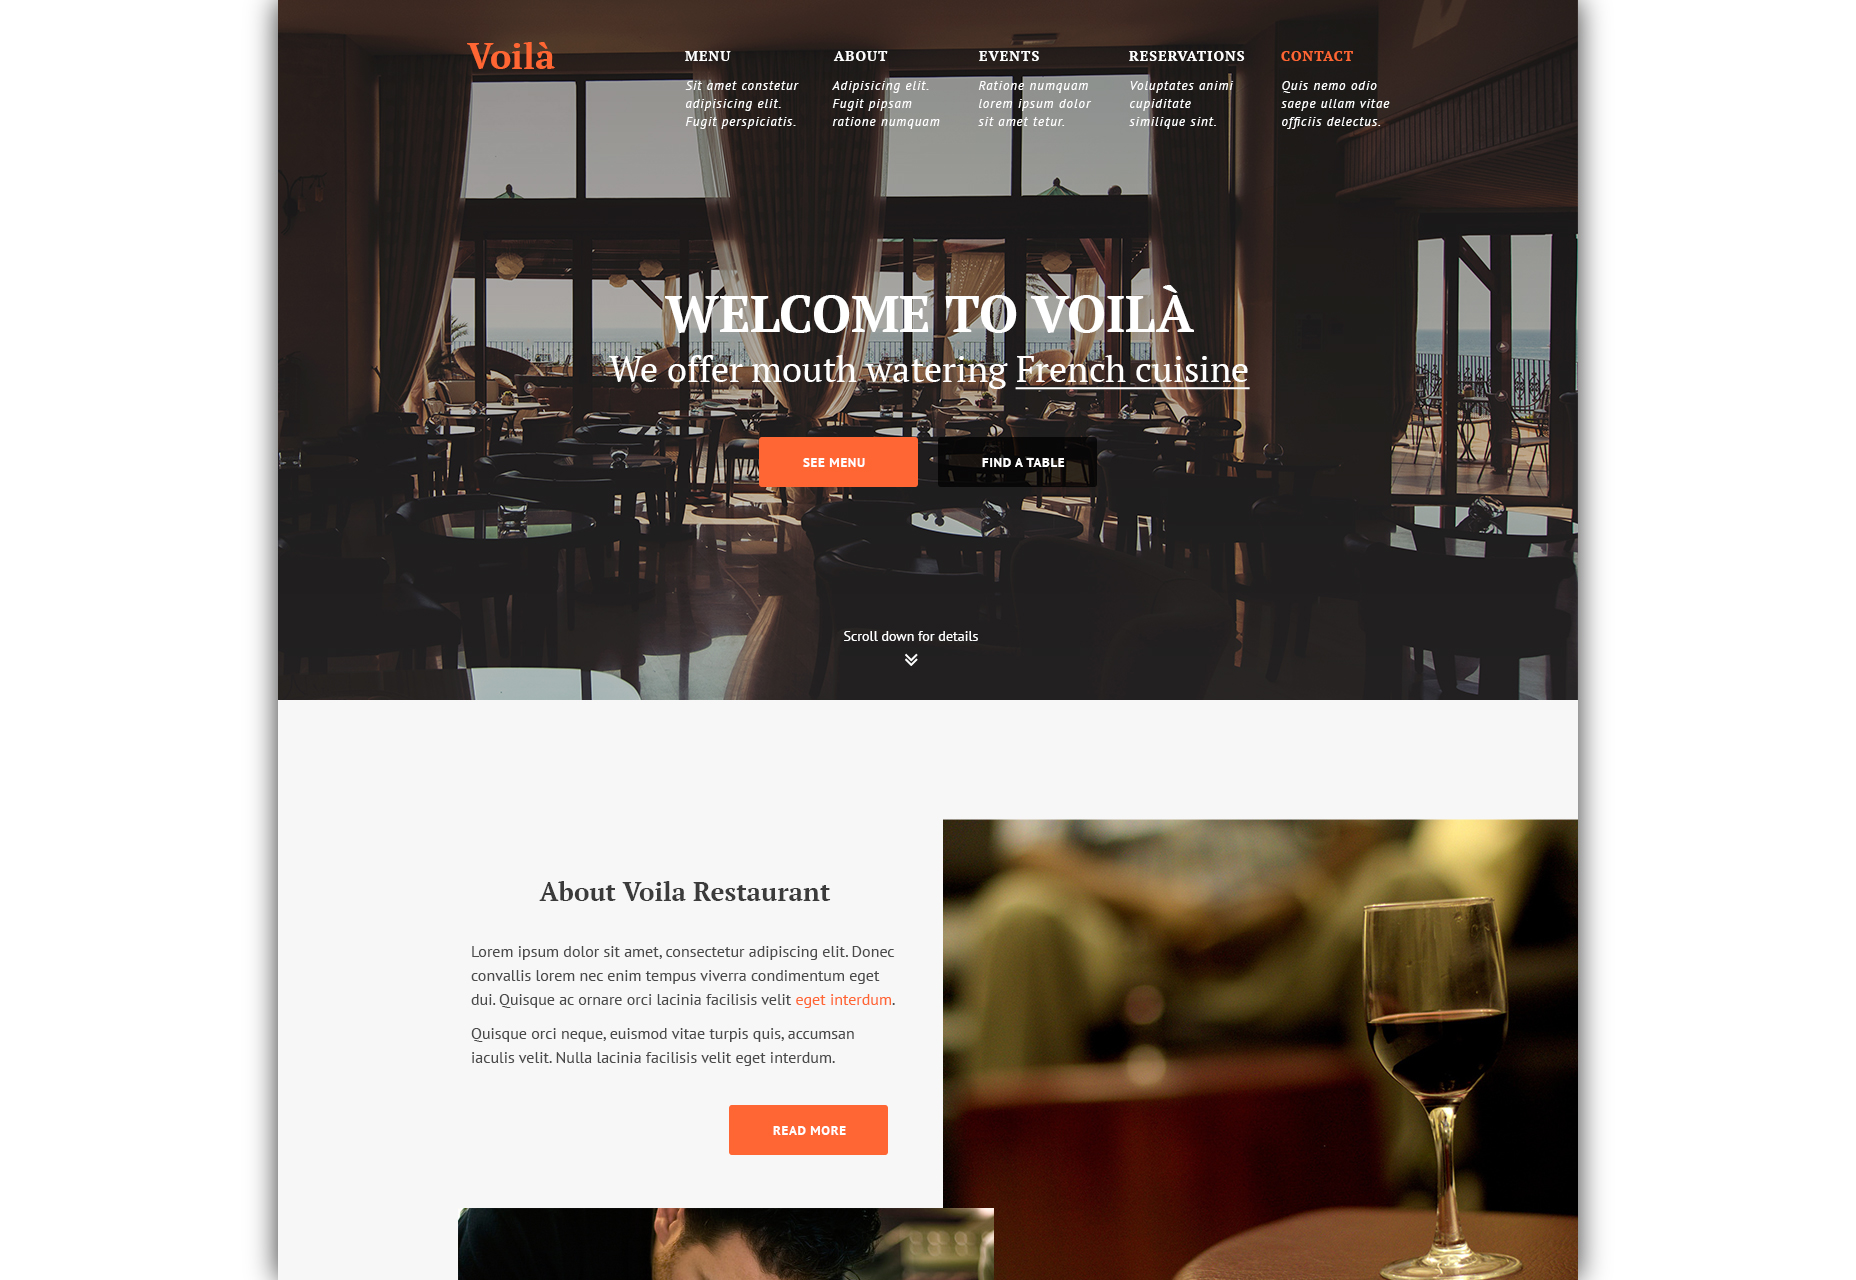 Voila: Restaurant Website PSD Template